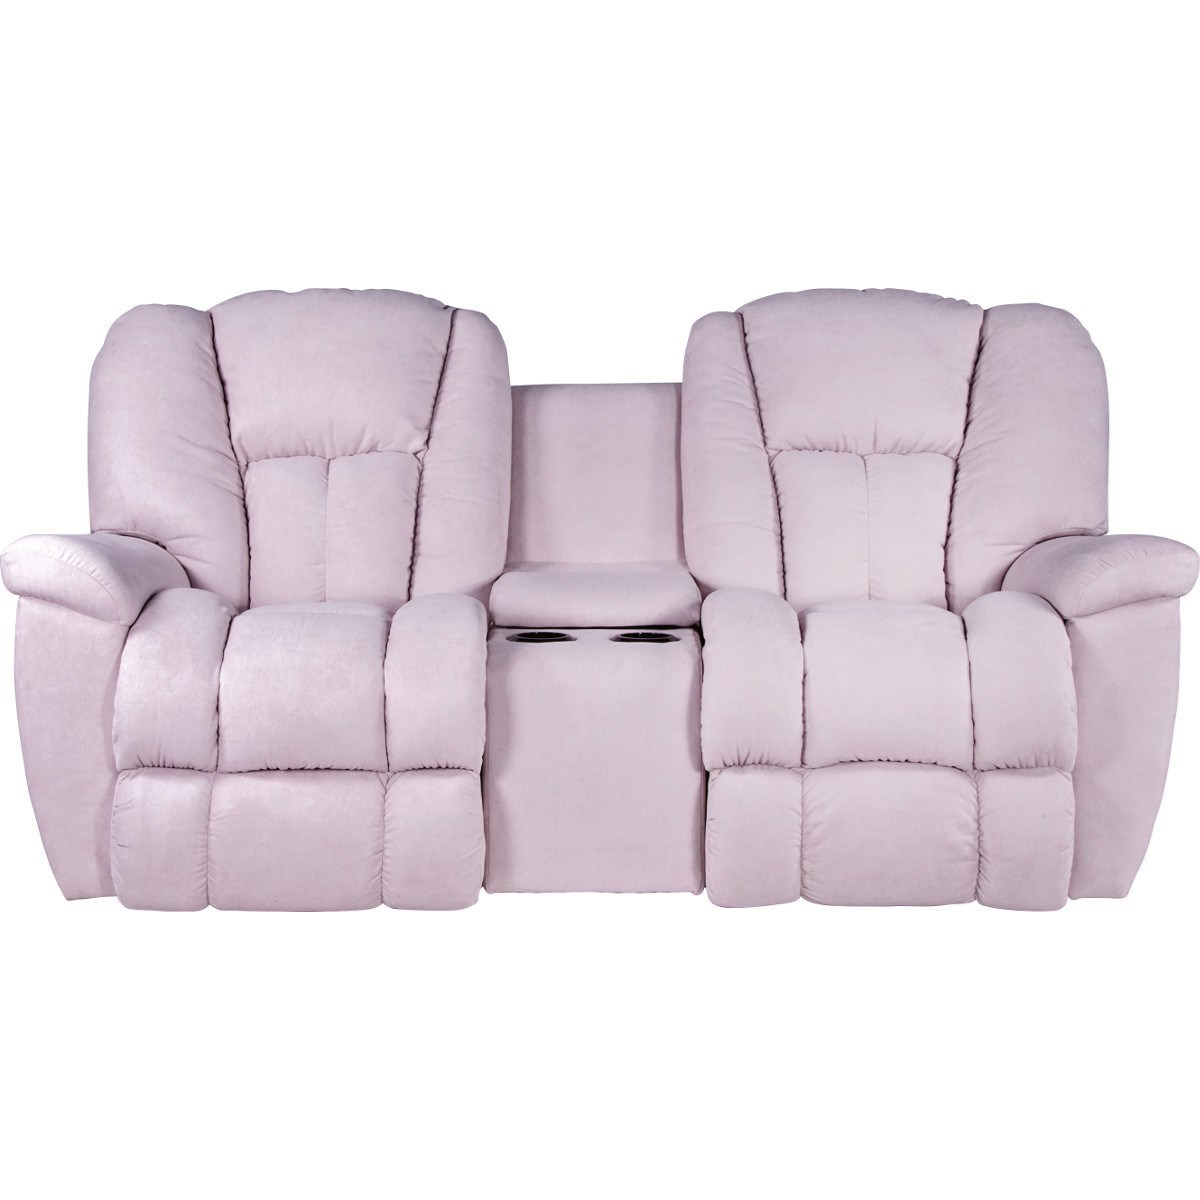 Full Reclining Loveseat w/ Middle Console